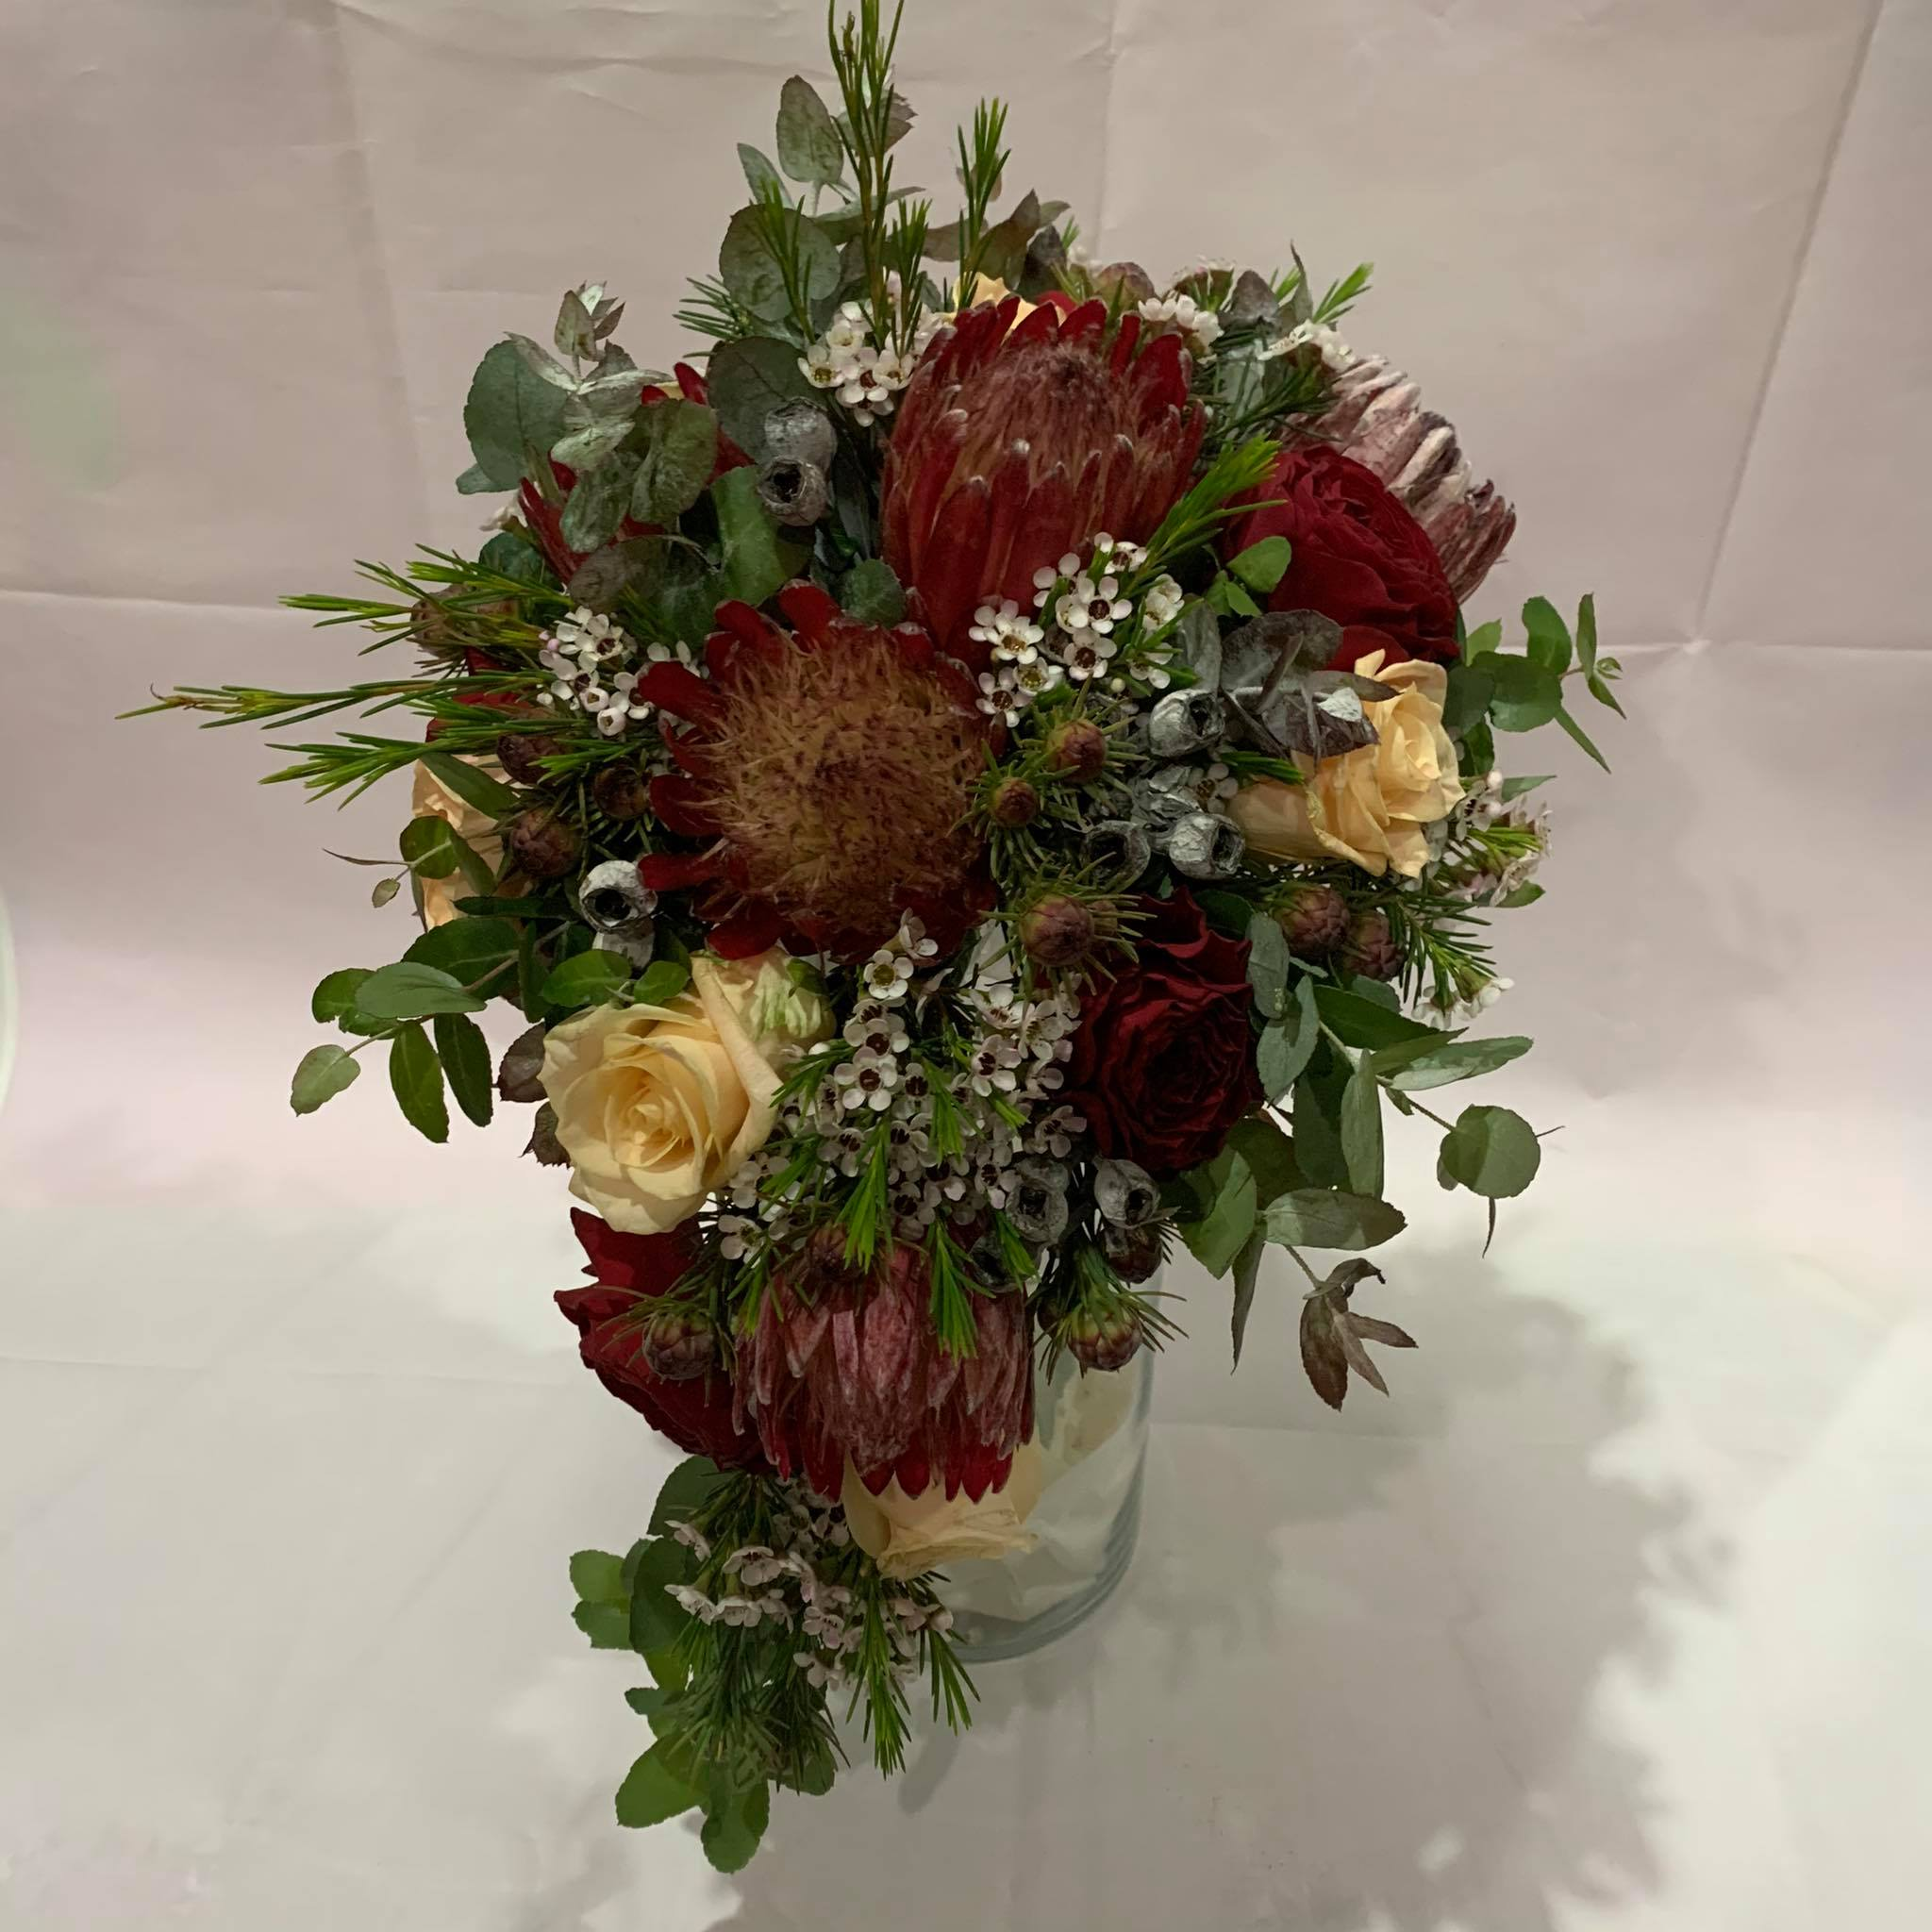 Buds n roses - Native Bouquet for bride.